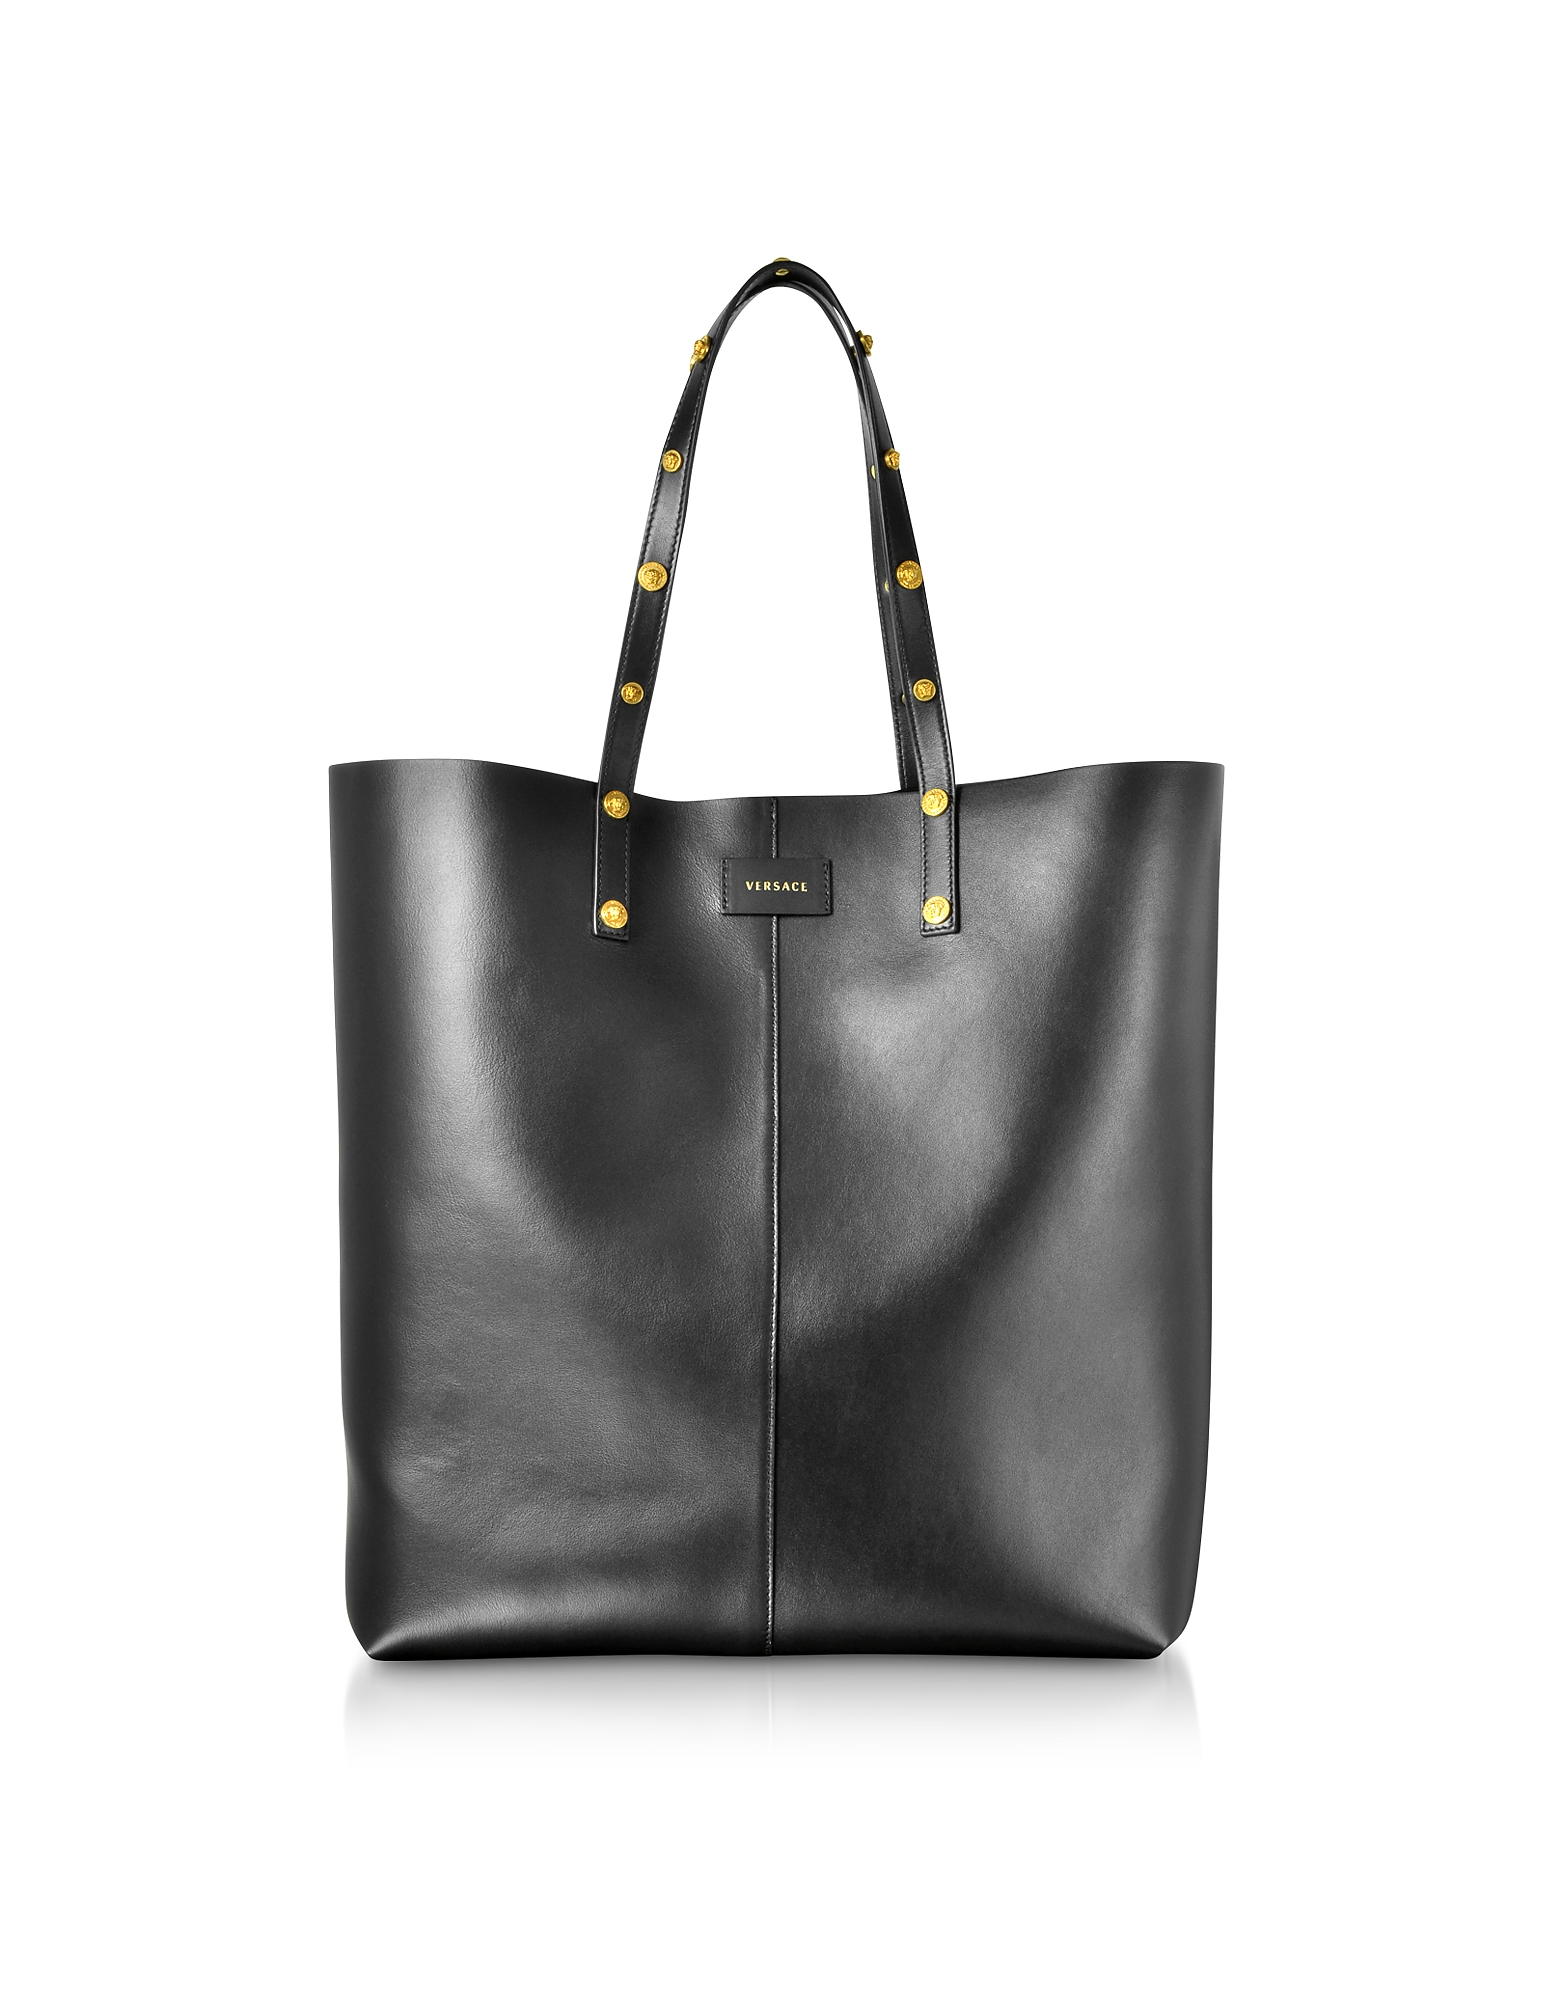 Versace Handbags, Black Leather Studded Tote Bag